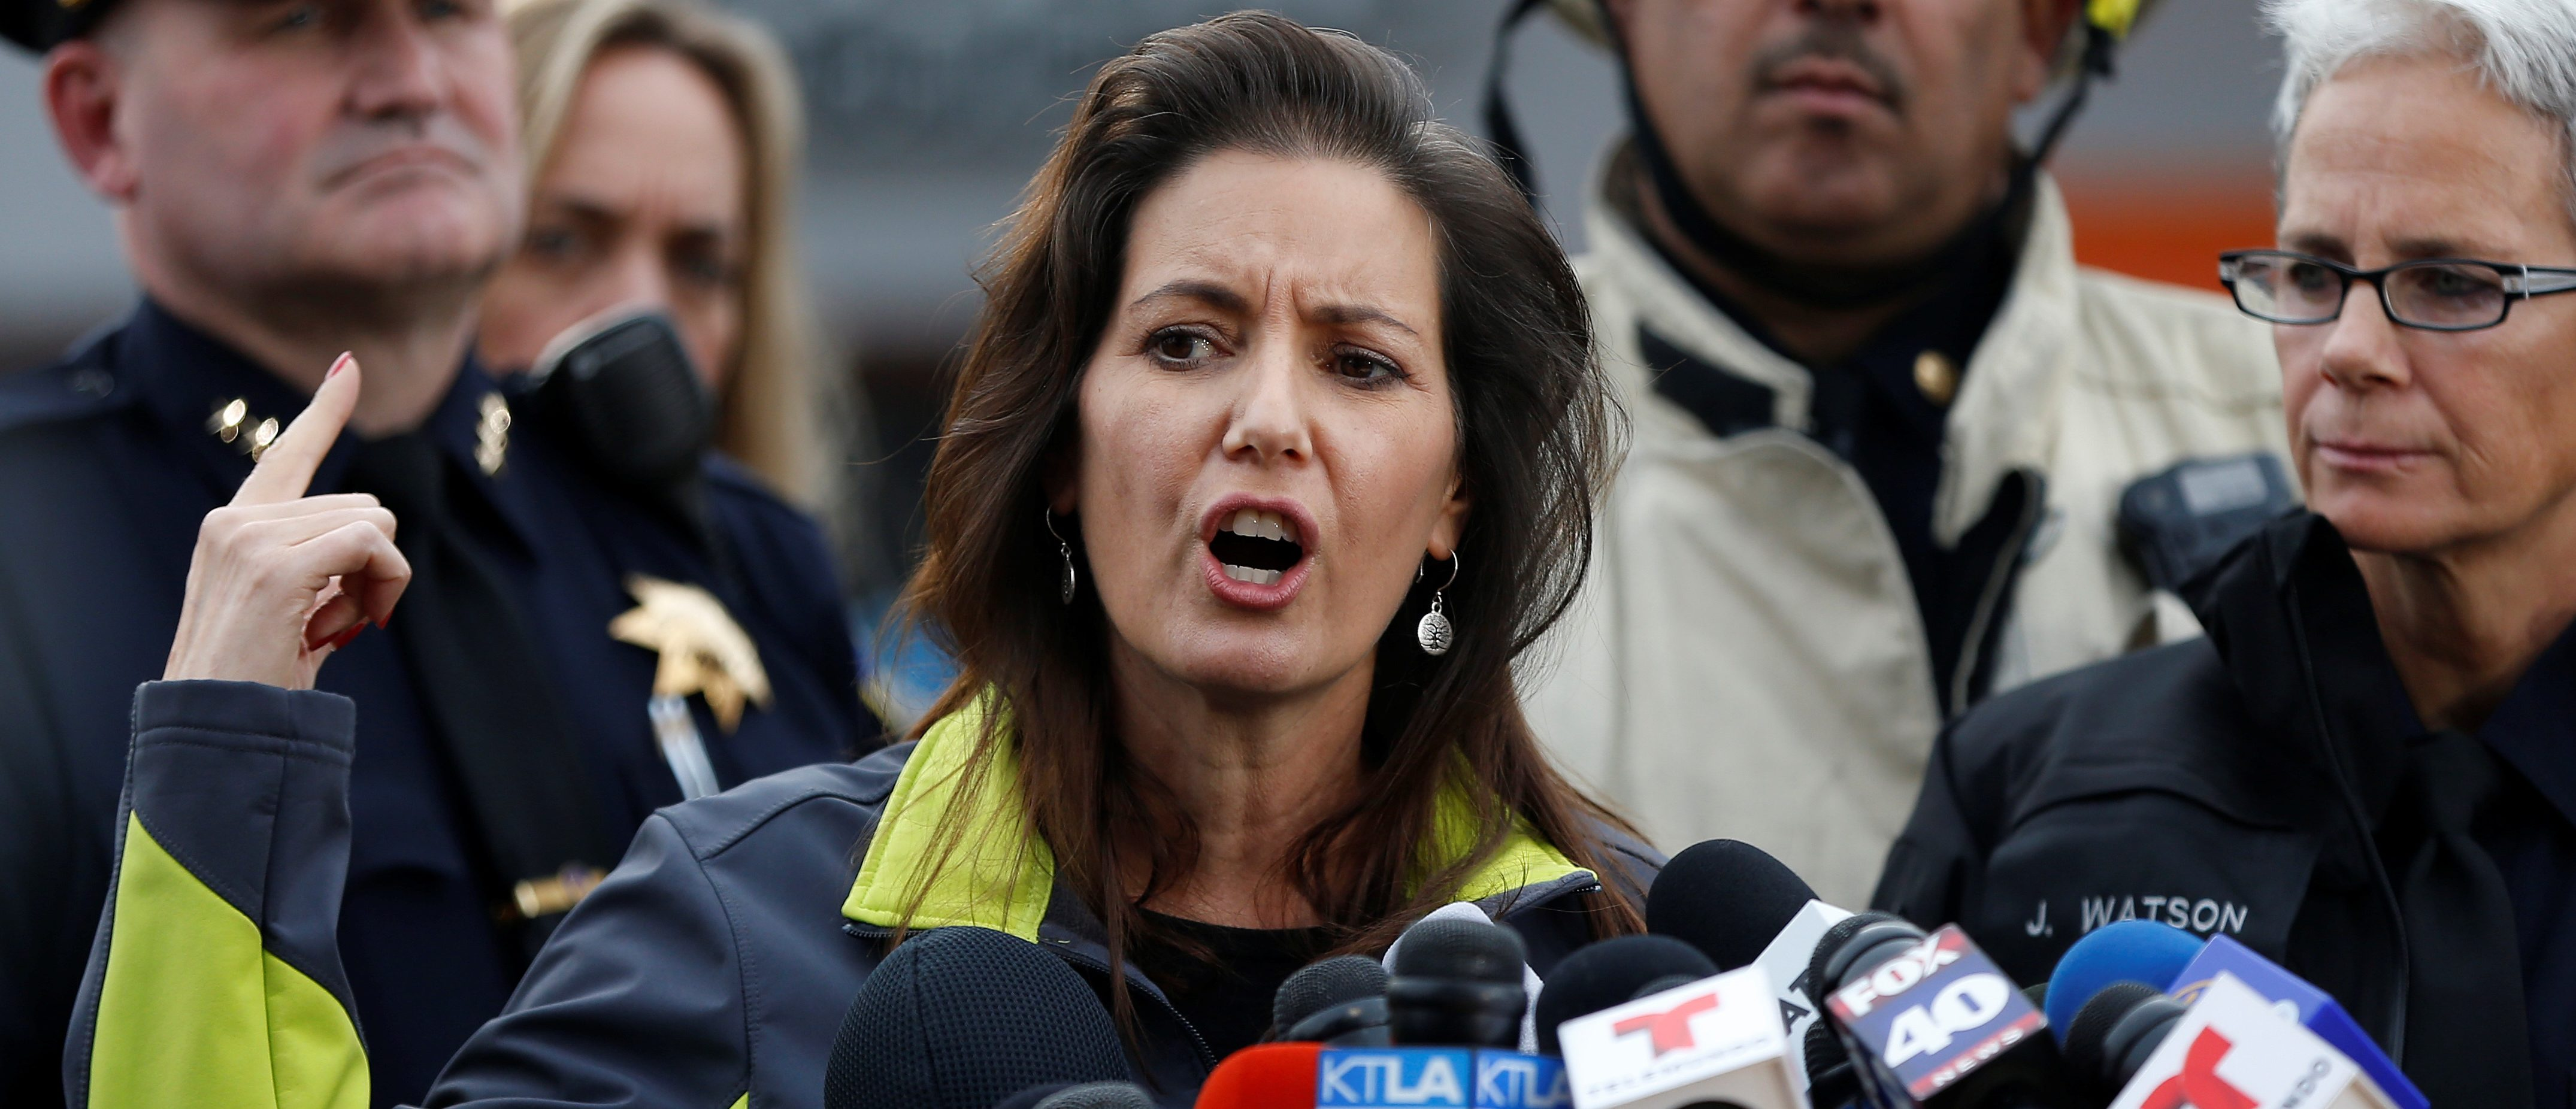 Oakland Mayor Libby Schaaf speaks to members of the media at the scene of a fatal warehouse fire in the Fruitvale district of Oakland, California, U.S. December 5, 2016. REUTERS/Stephen Lam